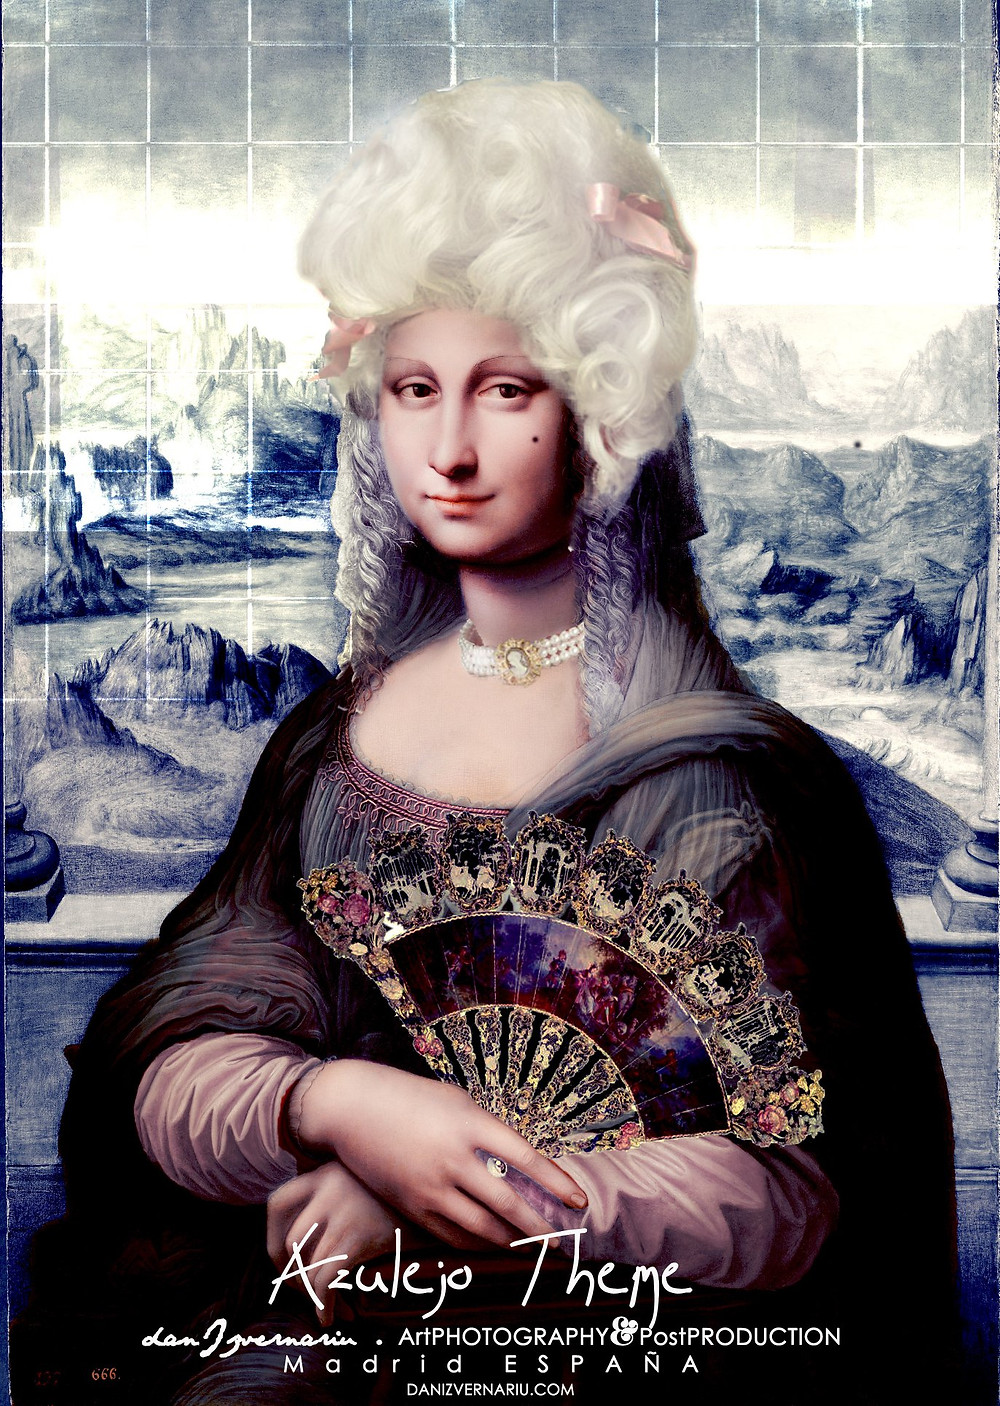 Gioconda Azulejo theme portrait by Dan Izvernariu, Madrid, España 2019